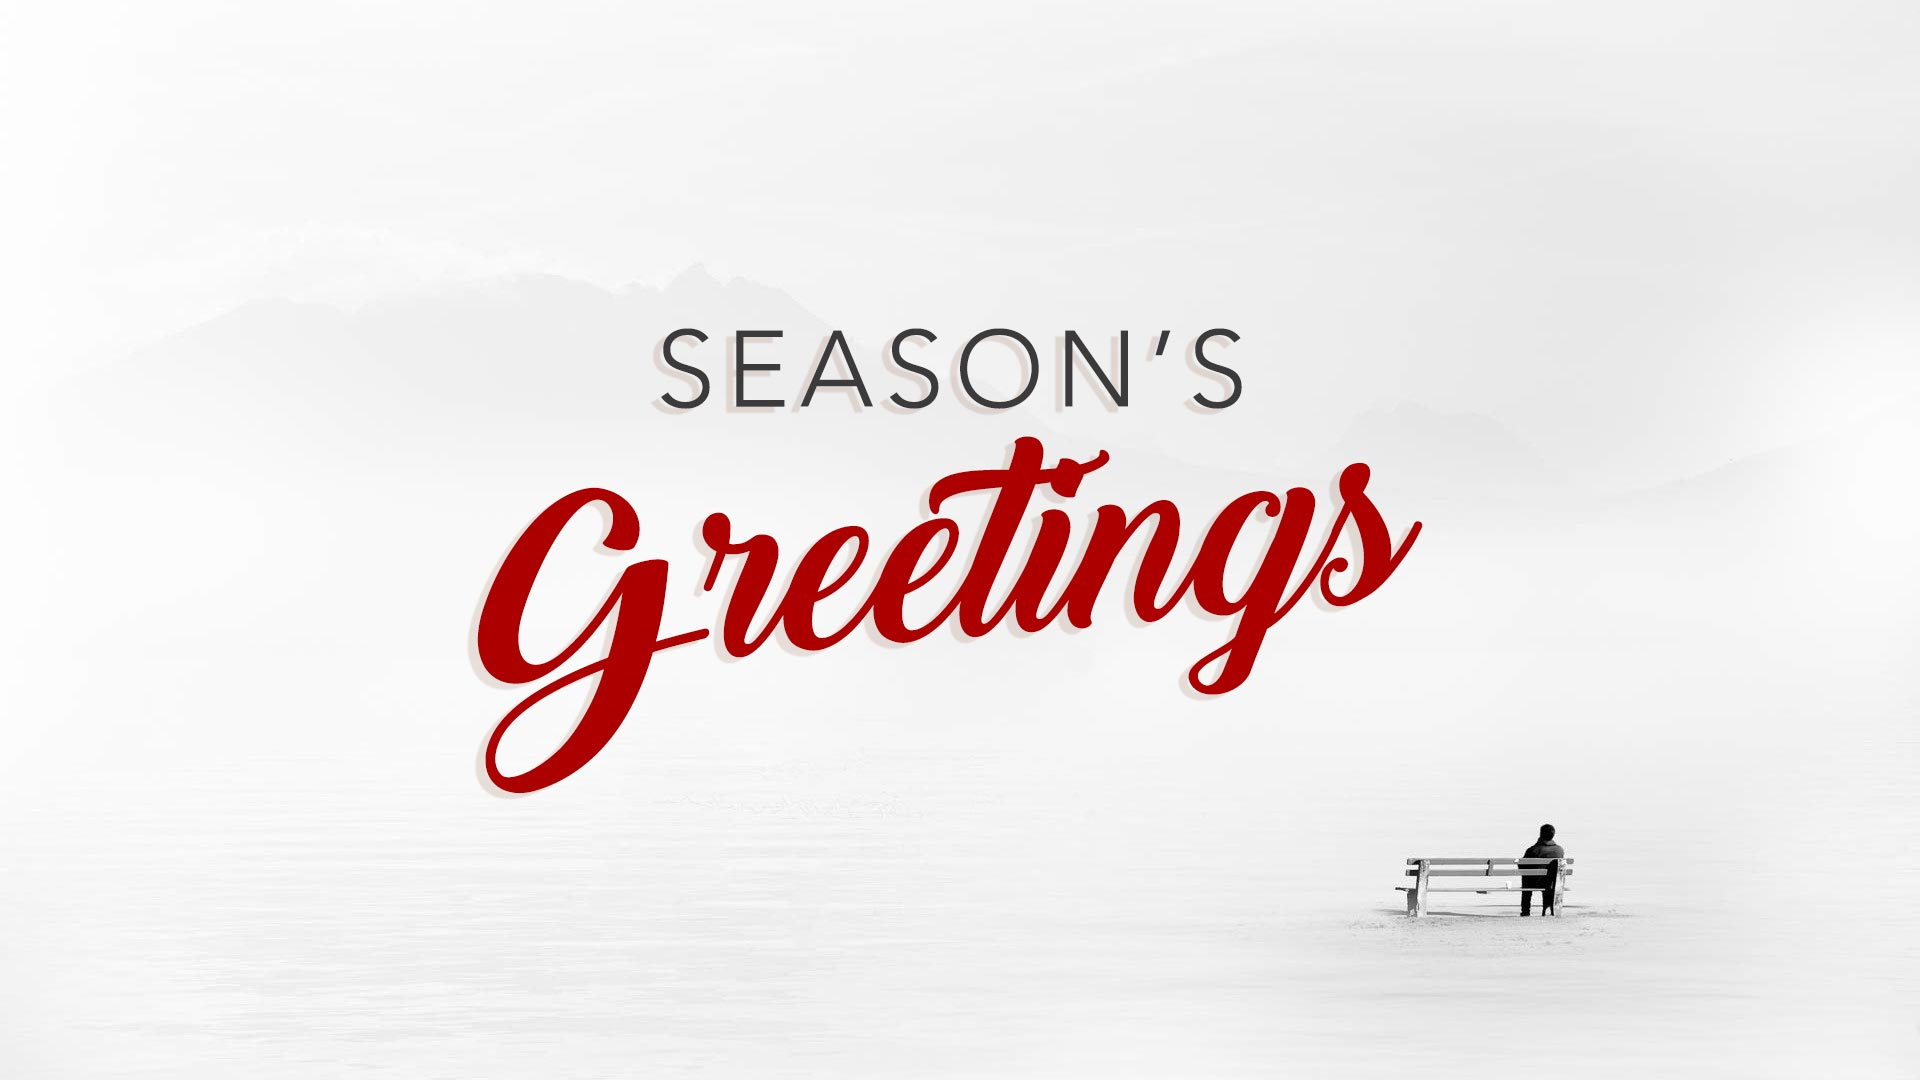 15 Seasons Greetings Cards Stock Images HD Wallpapers Winter 1920x1080